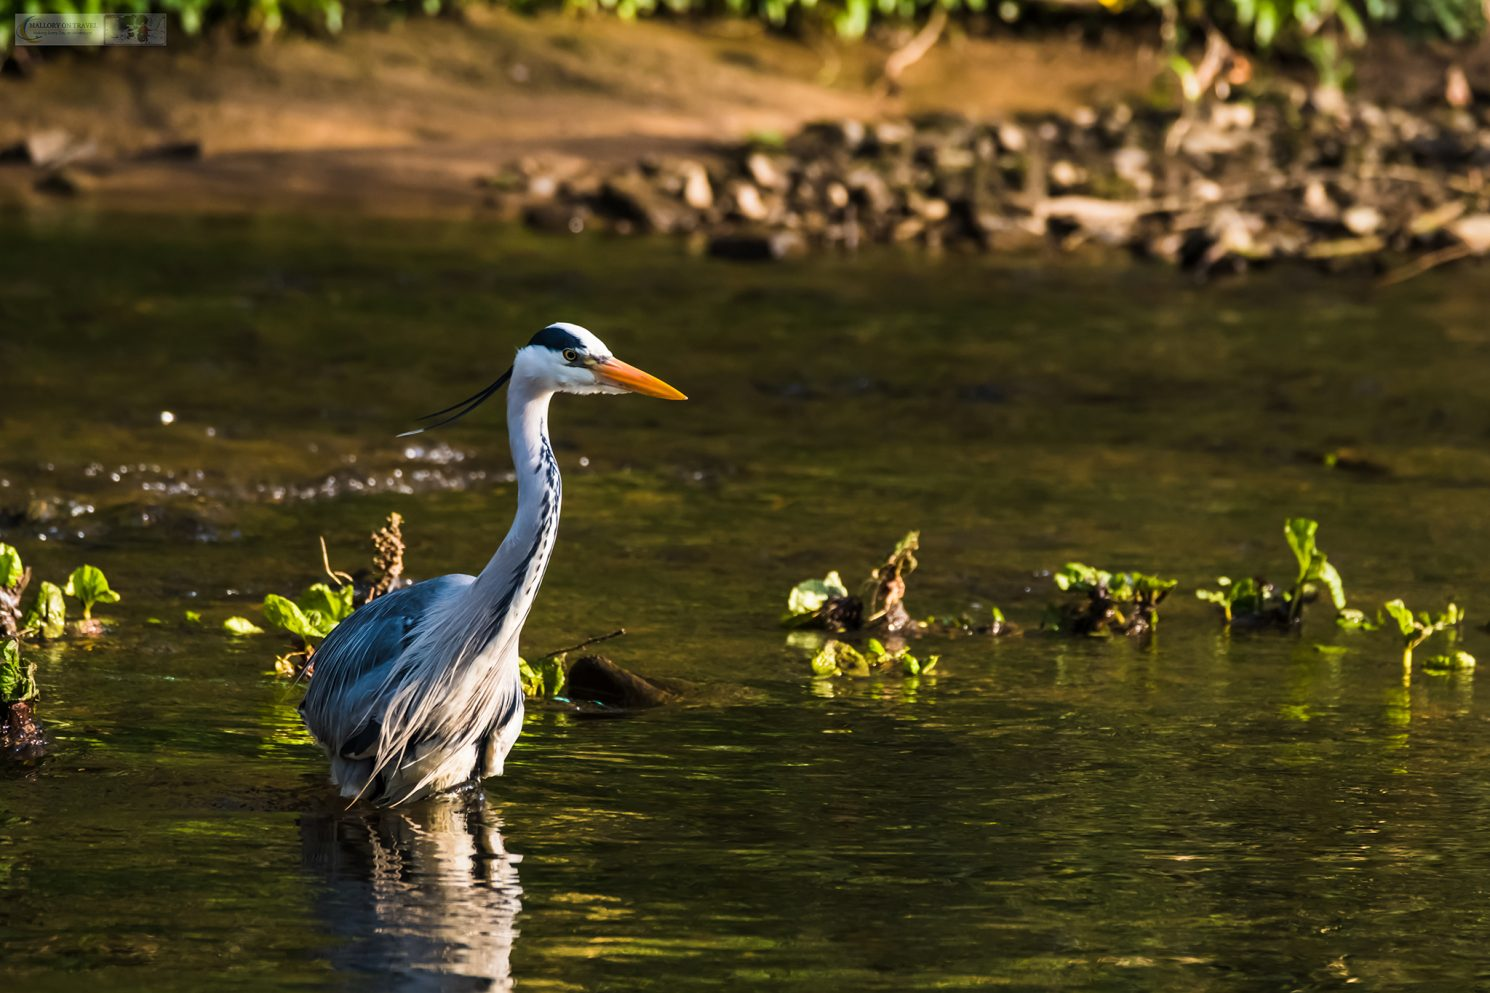 Wildlife photography; A grey heron fishing on the River Goyt in Brabyns Park, near Marple Bridge, Cheshire on Mallory on Travel adventure travel, photography, travel Iain Mallory_Goyt-1-4